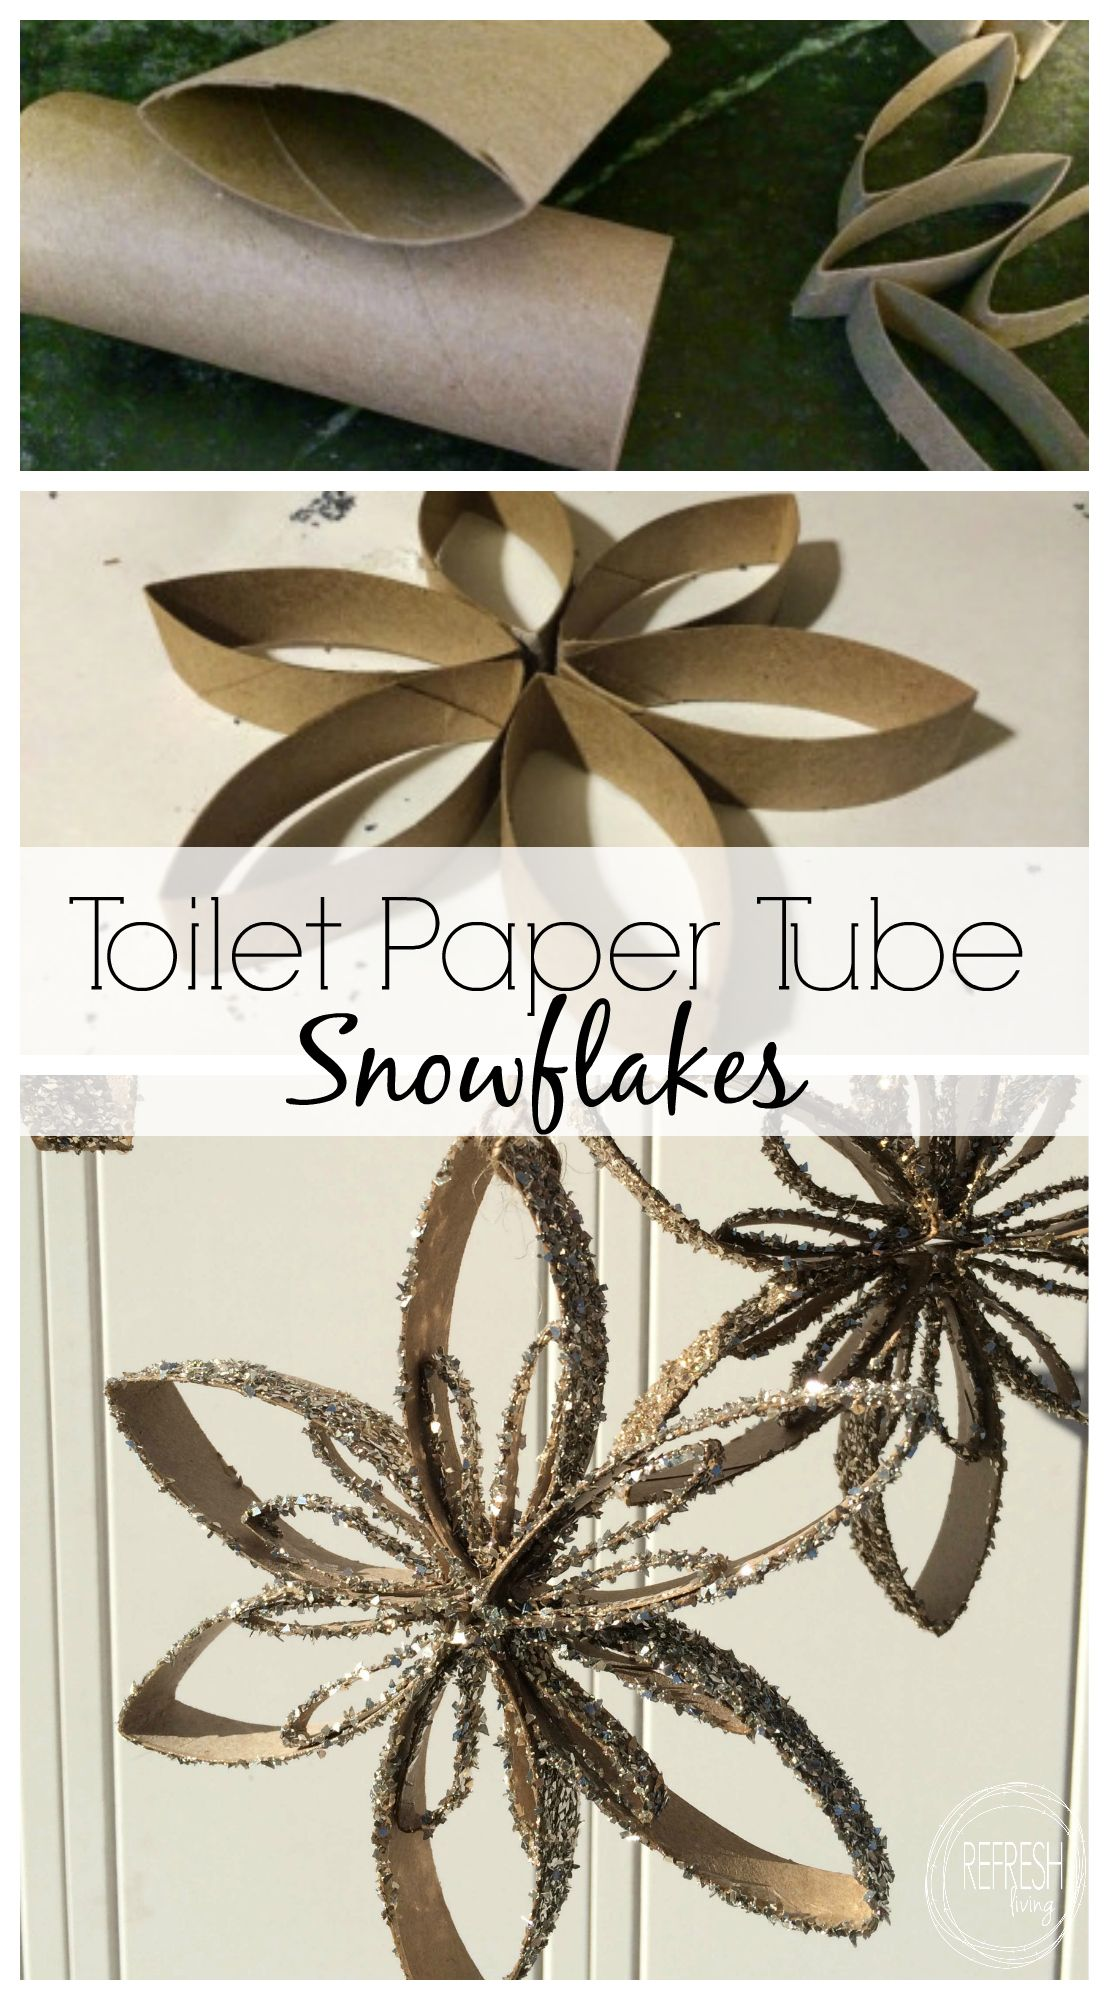 Make snowflake ornaments - Reuse Old Toilet Paper Tubes To Make Snowflake Ornaments